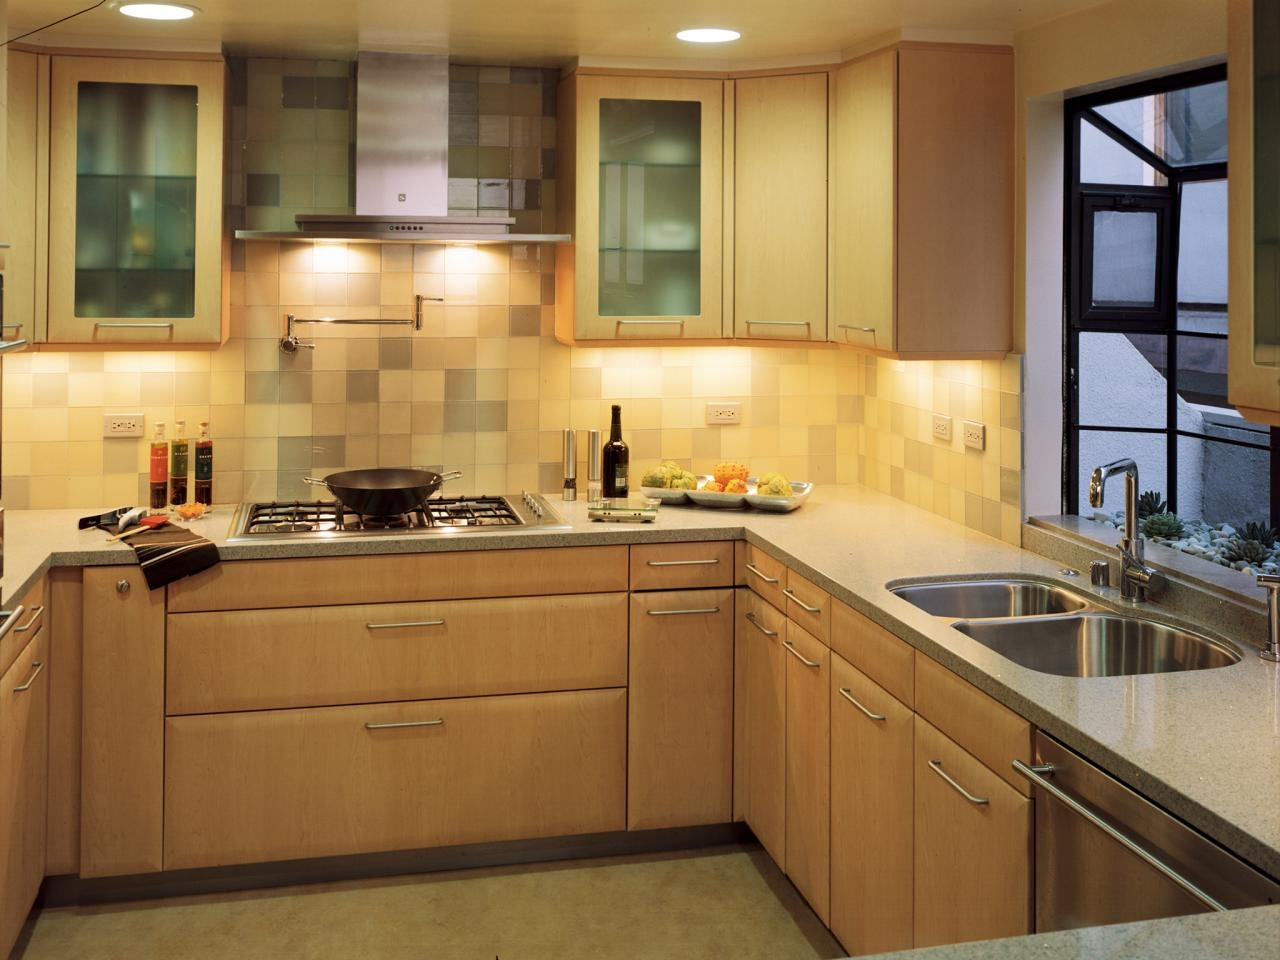 Styles And Colors Of Kitchen Cabinets